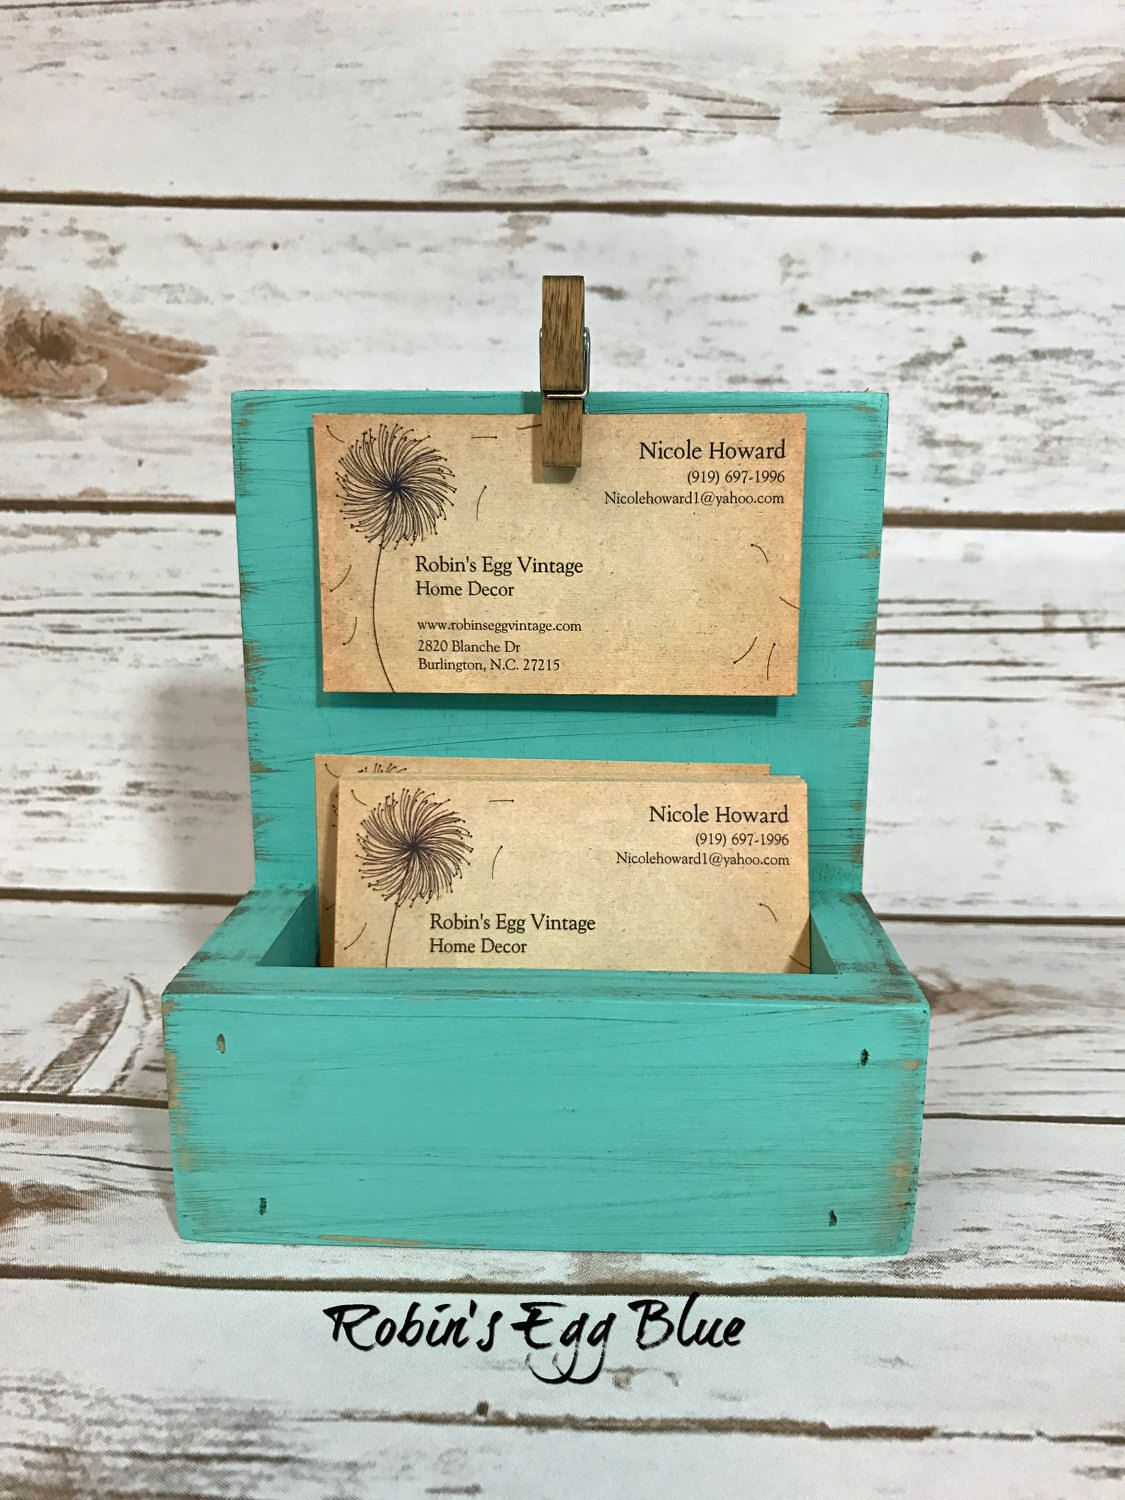 farmhouse business card holdershabby chic business card displayfrench country decorturquoiseavailable in a variety of colors by robinseggvintagenc - Business Card Display